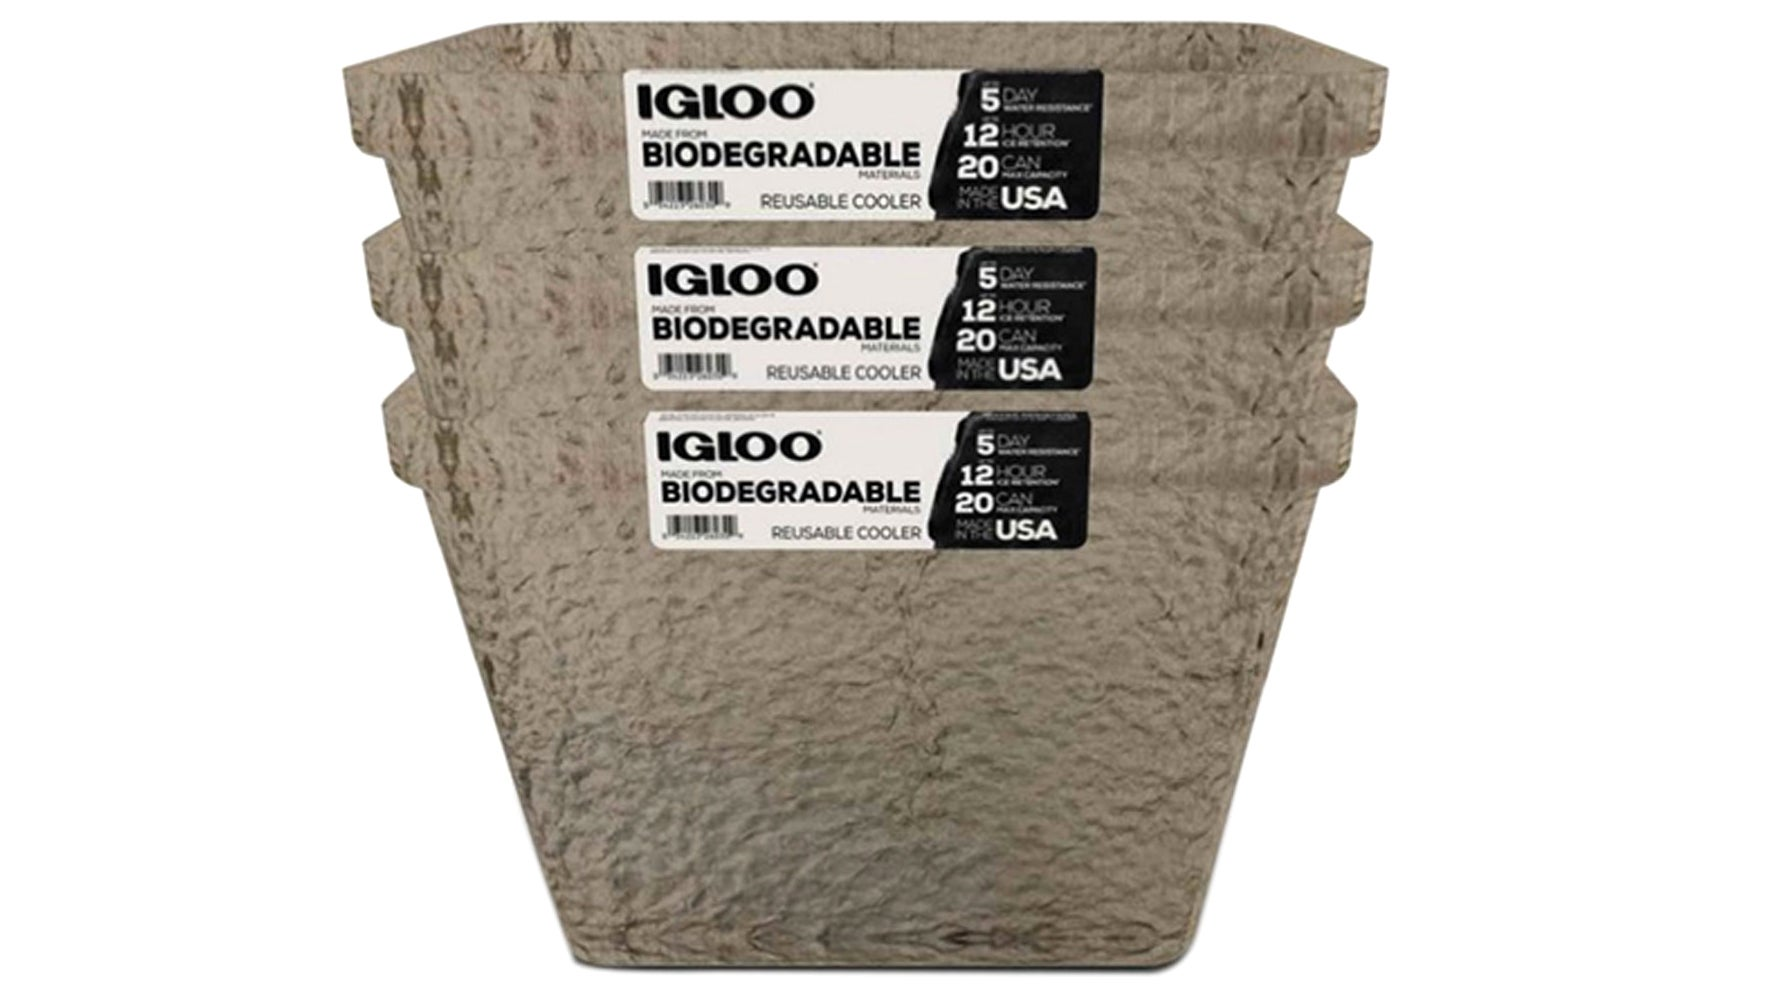 Igloo's New Foam-Free Coolers Are Made From Biodegradable Tree Pulp